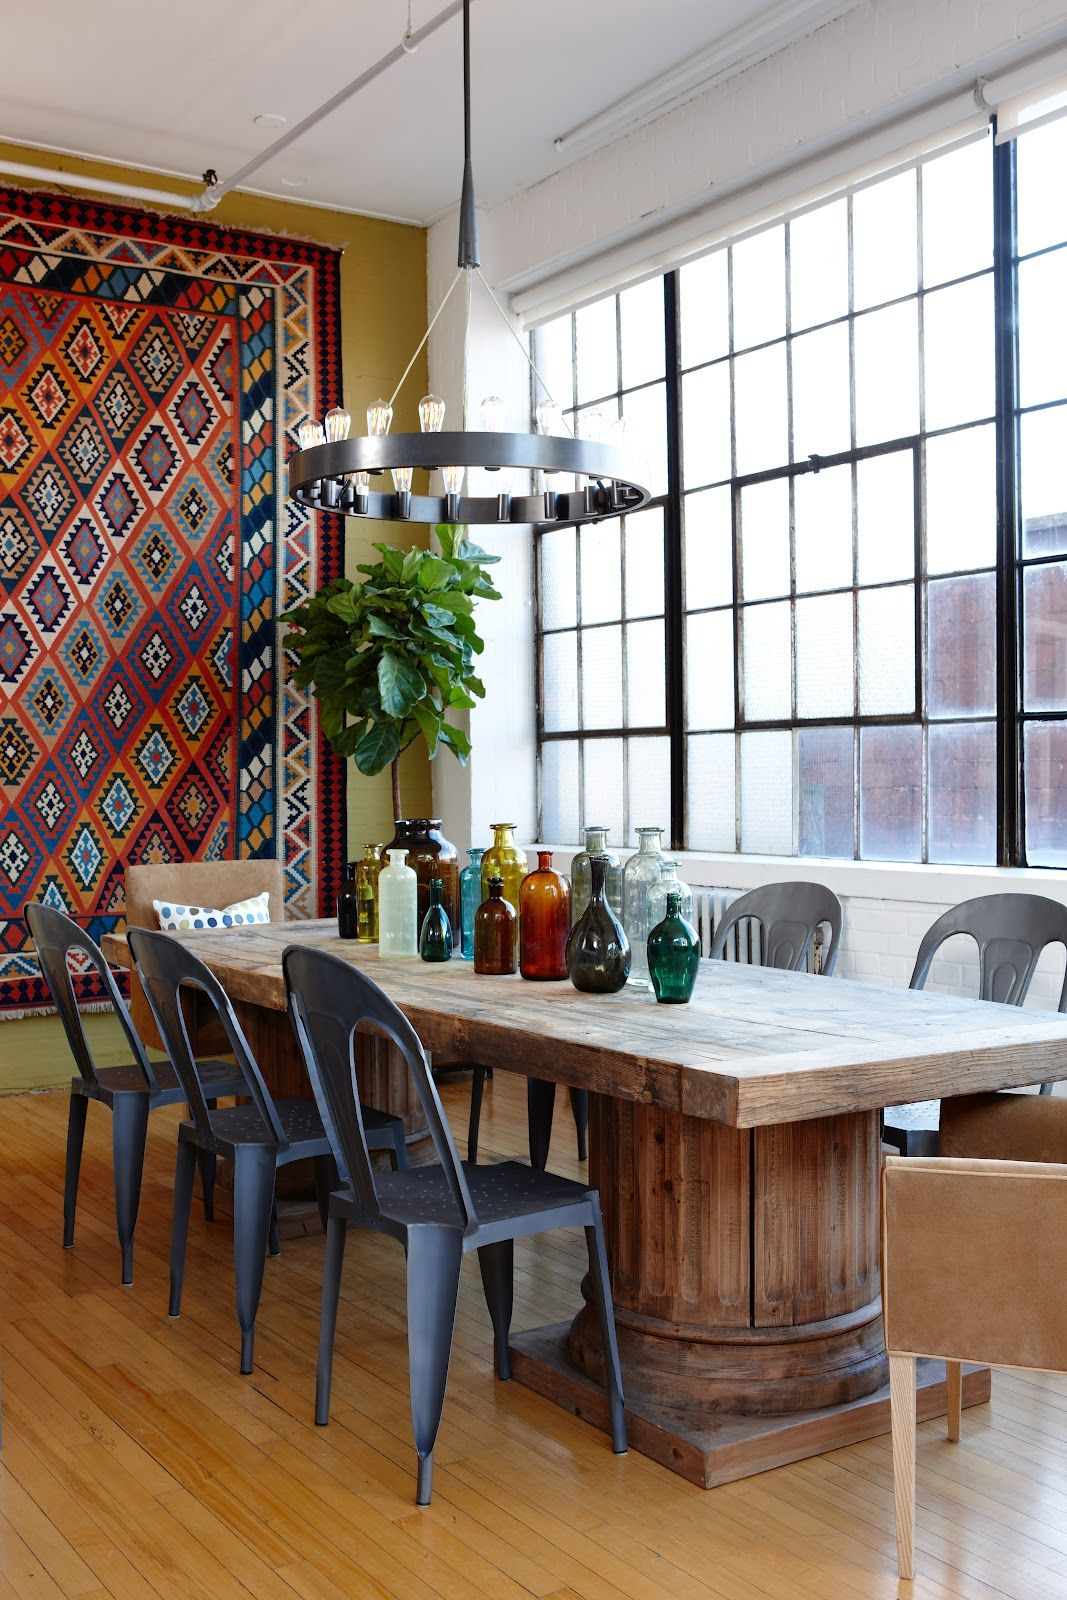 dining room efficient and rustic boho look my style for the home pinterest room urban on boho chic kitchen table decor id=74751